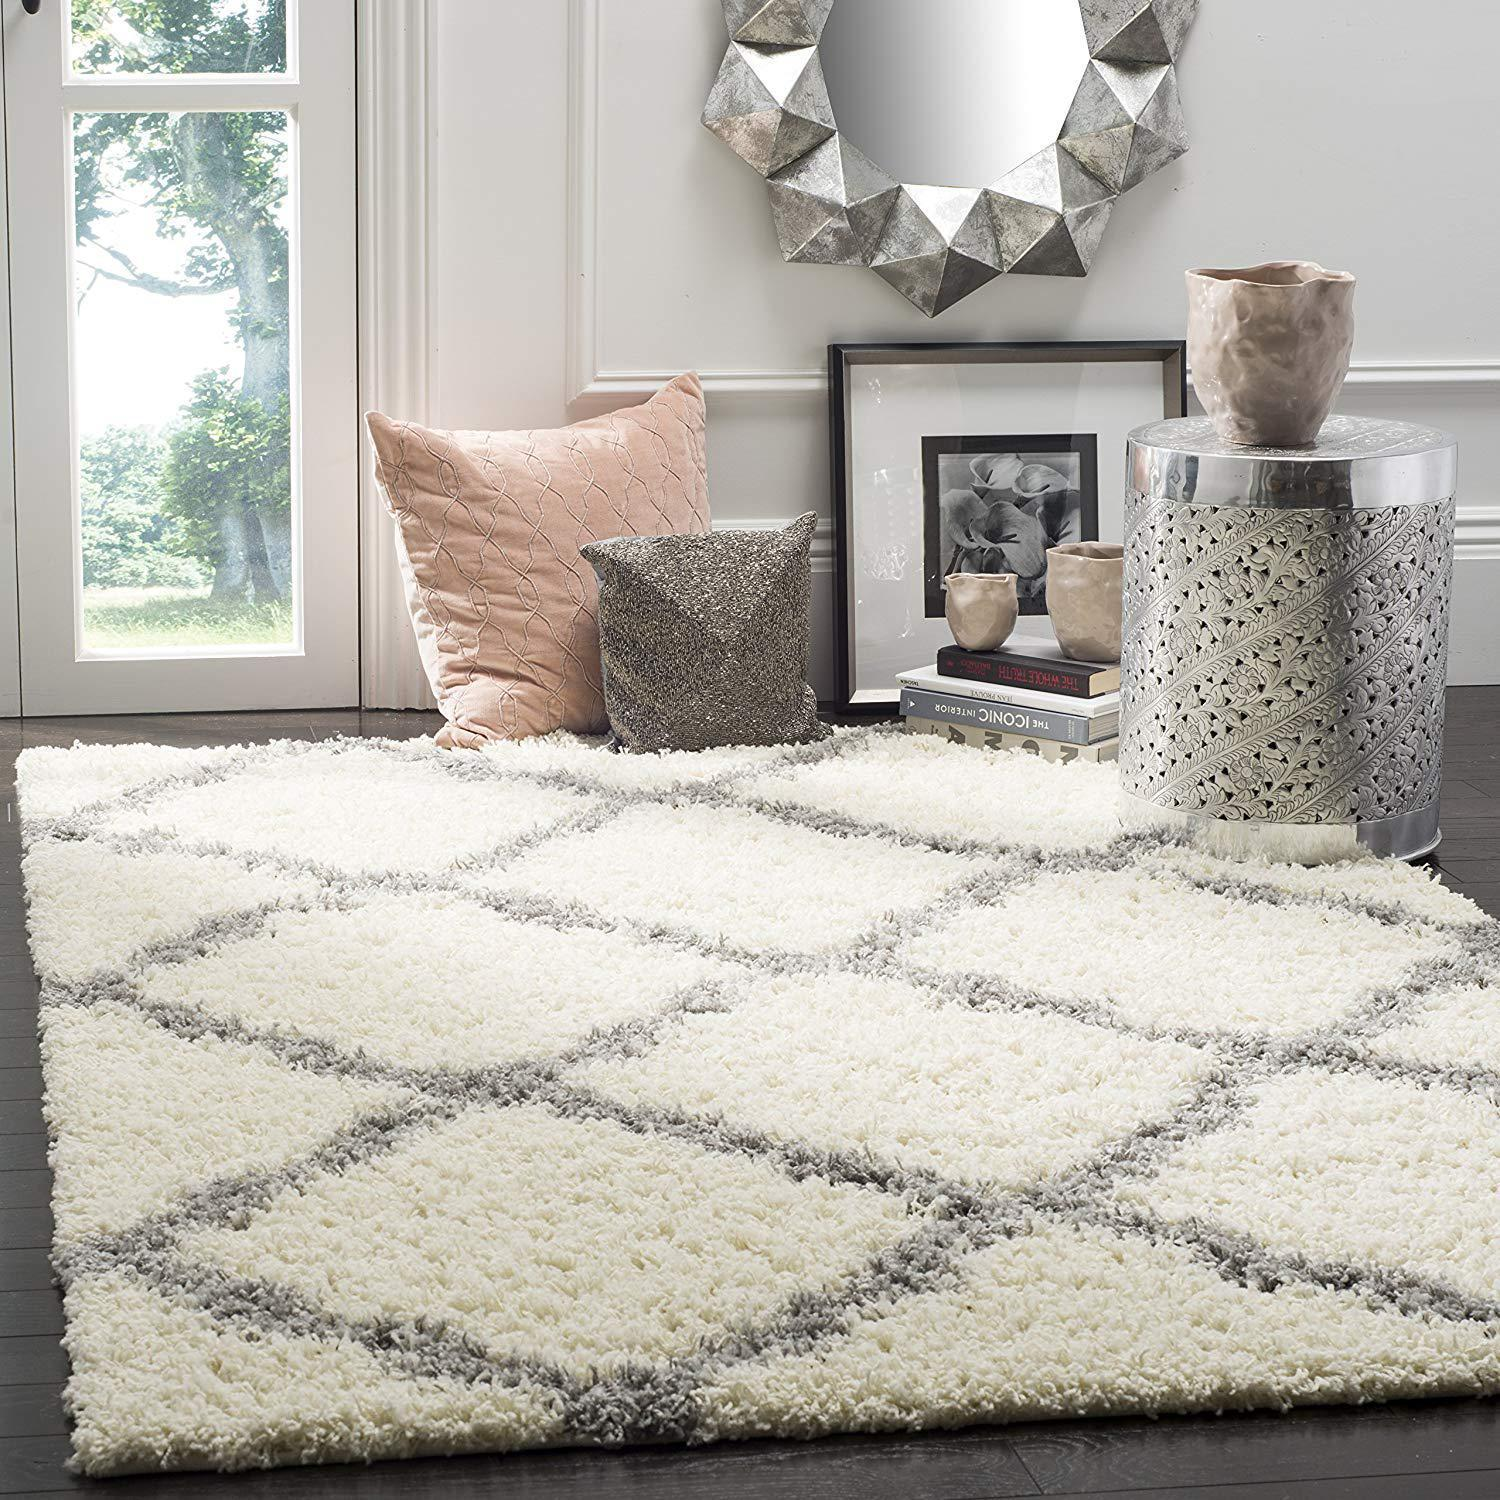 Stylish And Soft Rug(51 X 76)